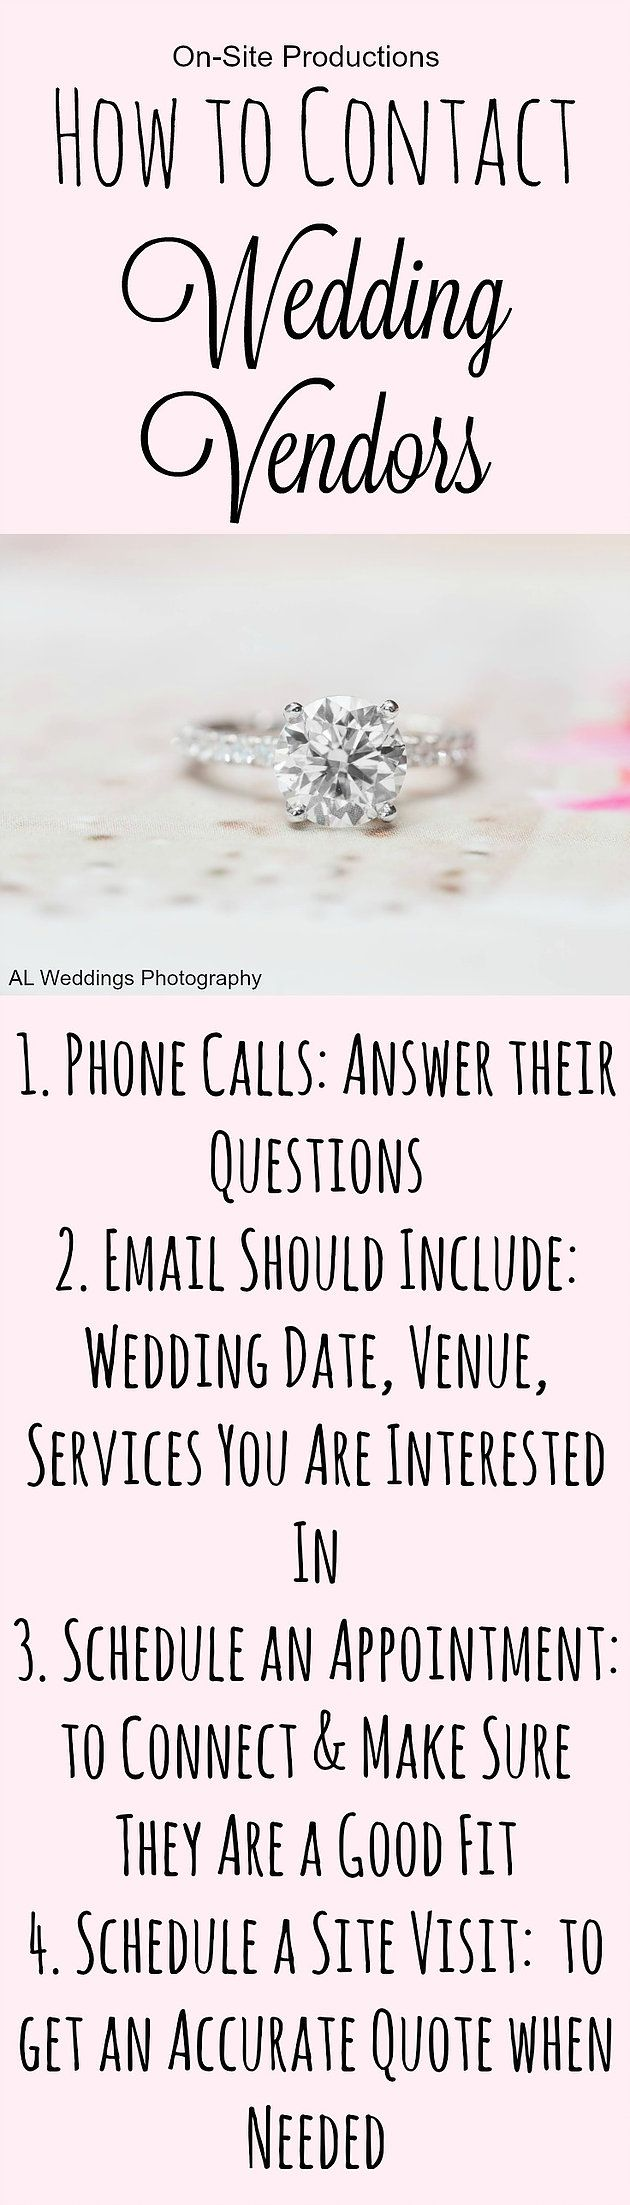 33 best alabama wedding venues and vendors images on pinterest these are awesome tips to get results fast to find the best fit of wedding vendors you are going to call email and meet with many candidates junglespirit Image collections